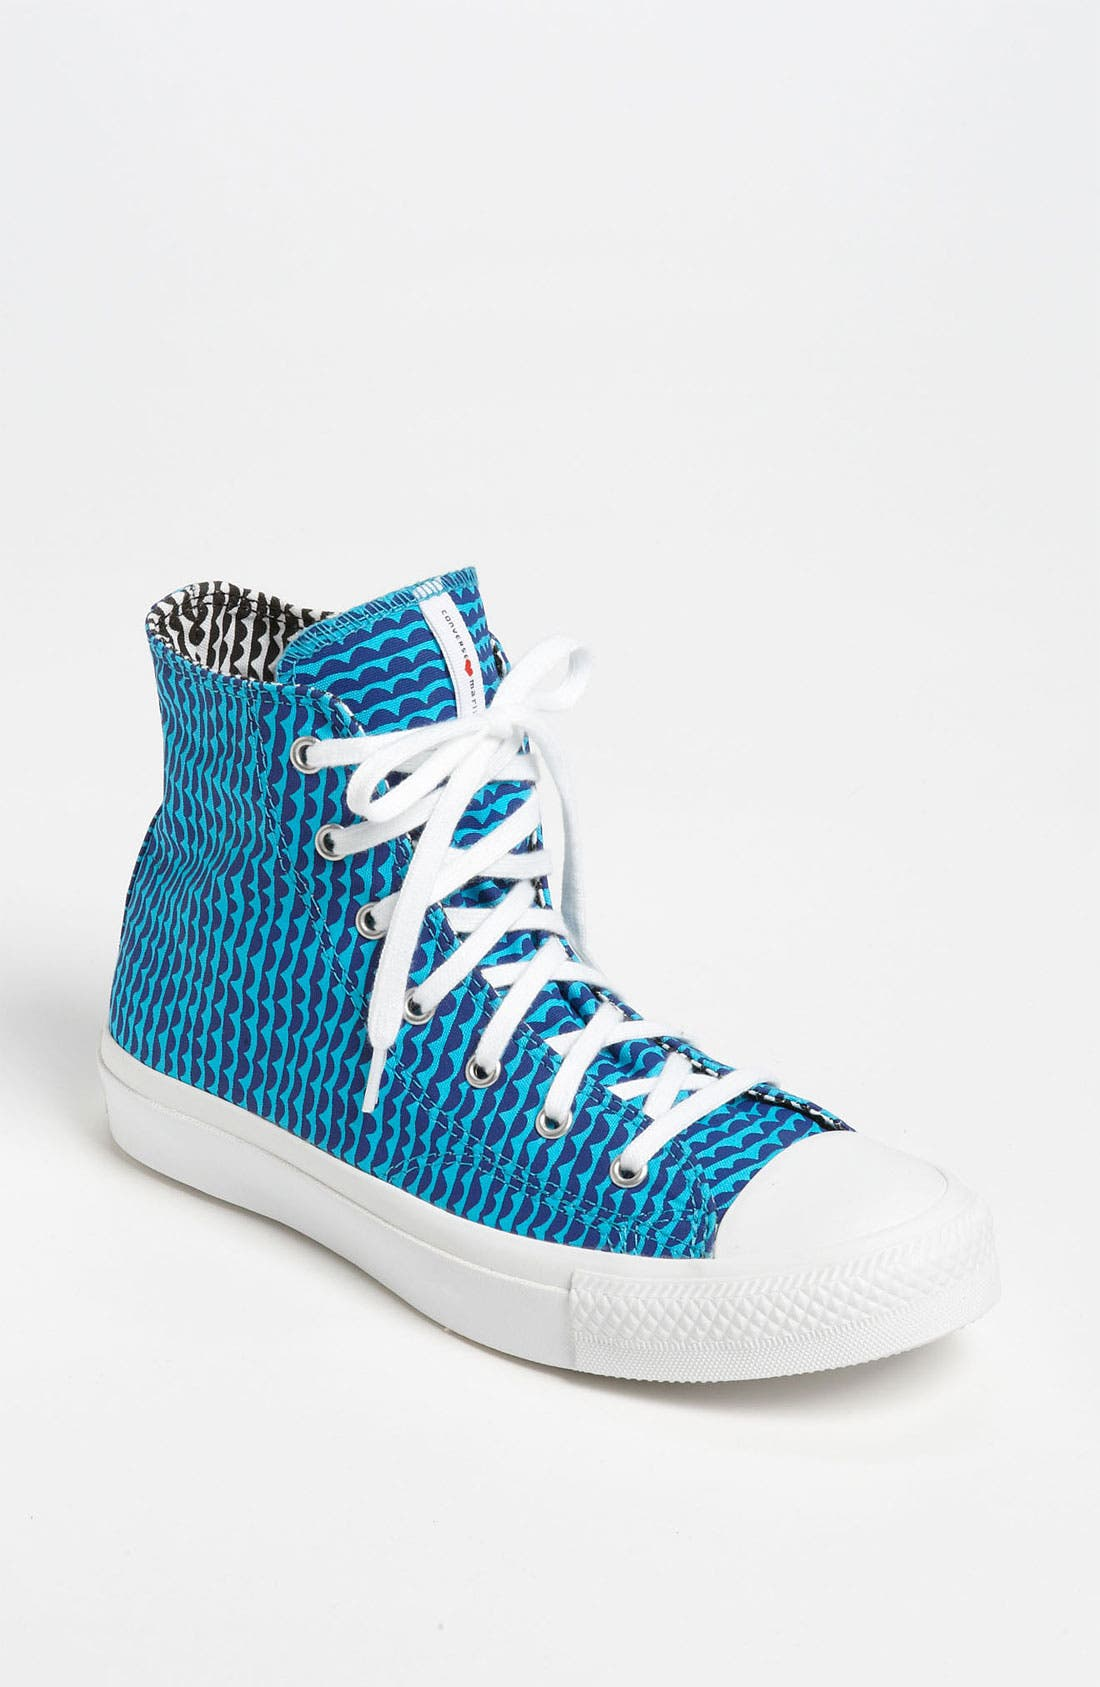 Alternate Image 1 Selected - Converse Chuck Taylor® All Star® 'Marimekko' High Top Sneaker (Women)